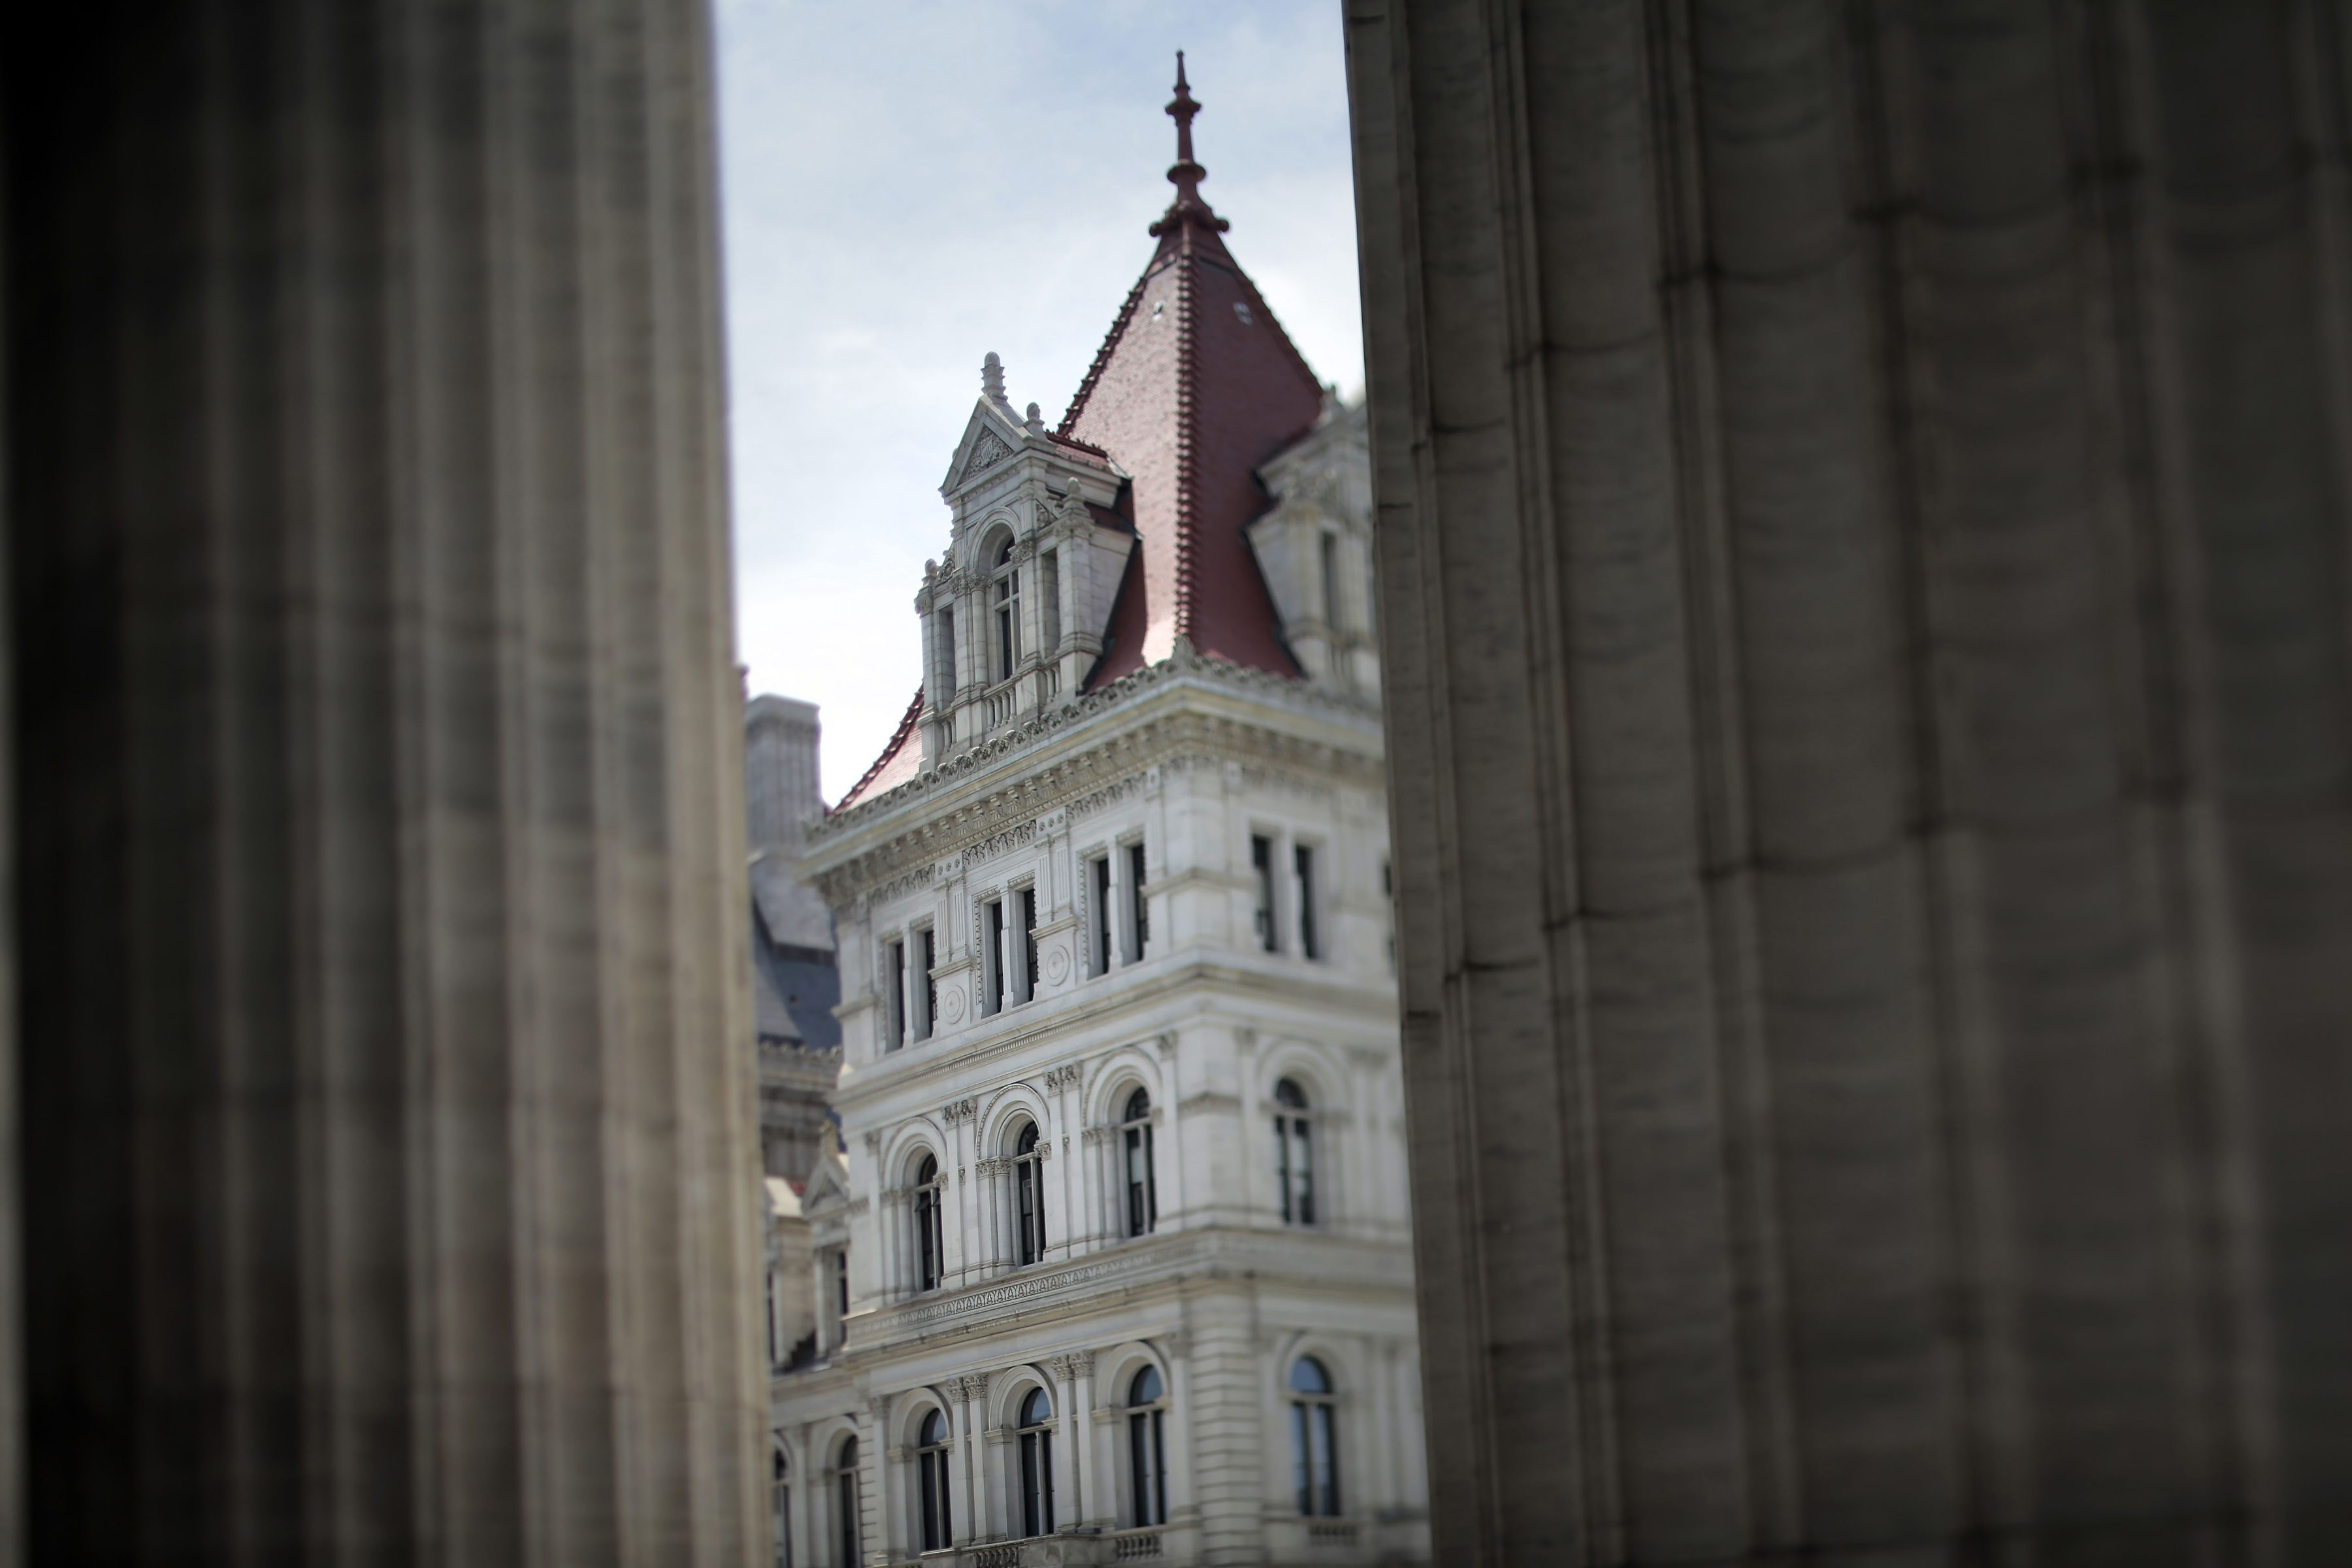 The New York State Capitol in Albany, July 16, 2014. Gov. Andrew Cuomo's office repeatedly interfered with an independent anti-corruption commission that has since been terminated, according to those who served on it.  (Nathaniel Brooks/The New York Times)